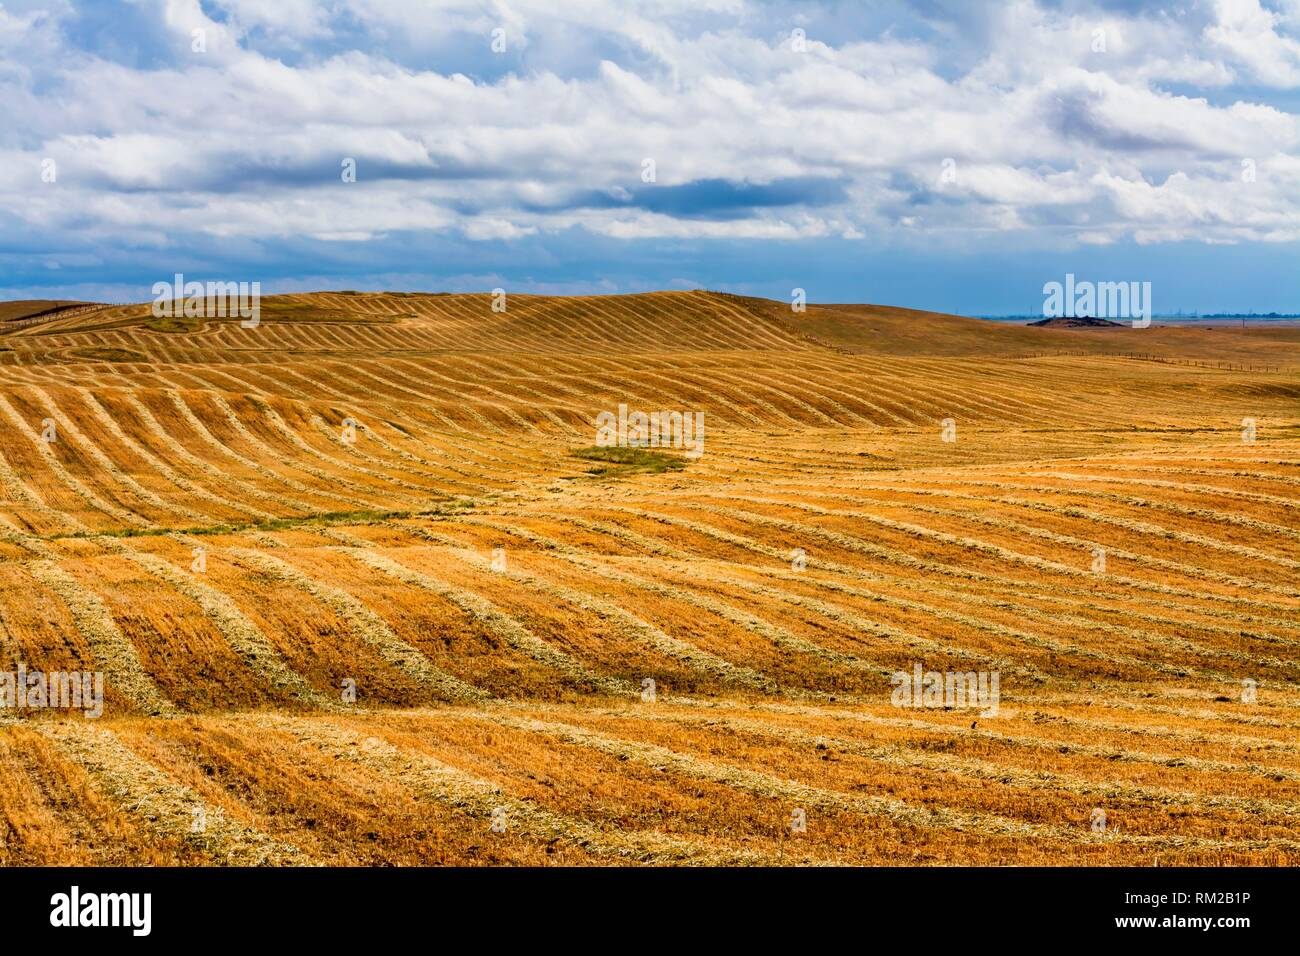 Rolling foothills of Central California following spring rain on mown hay. - Stock Image